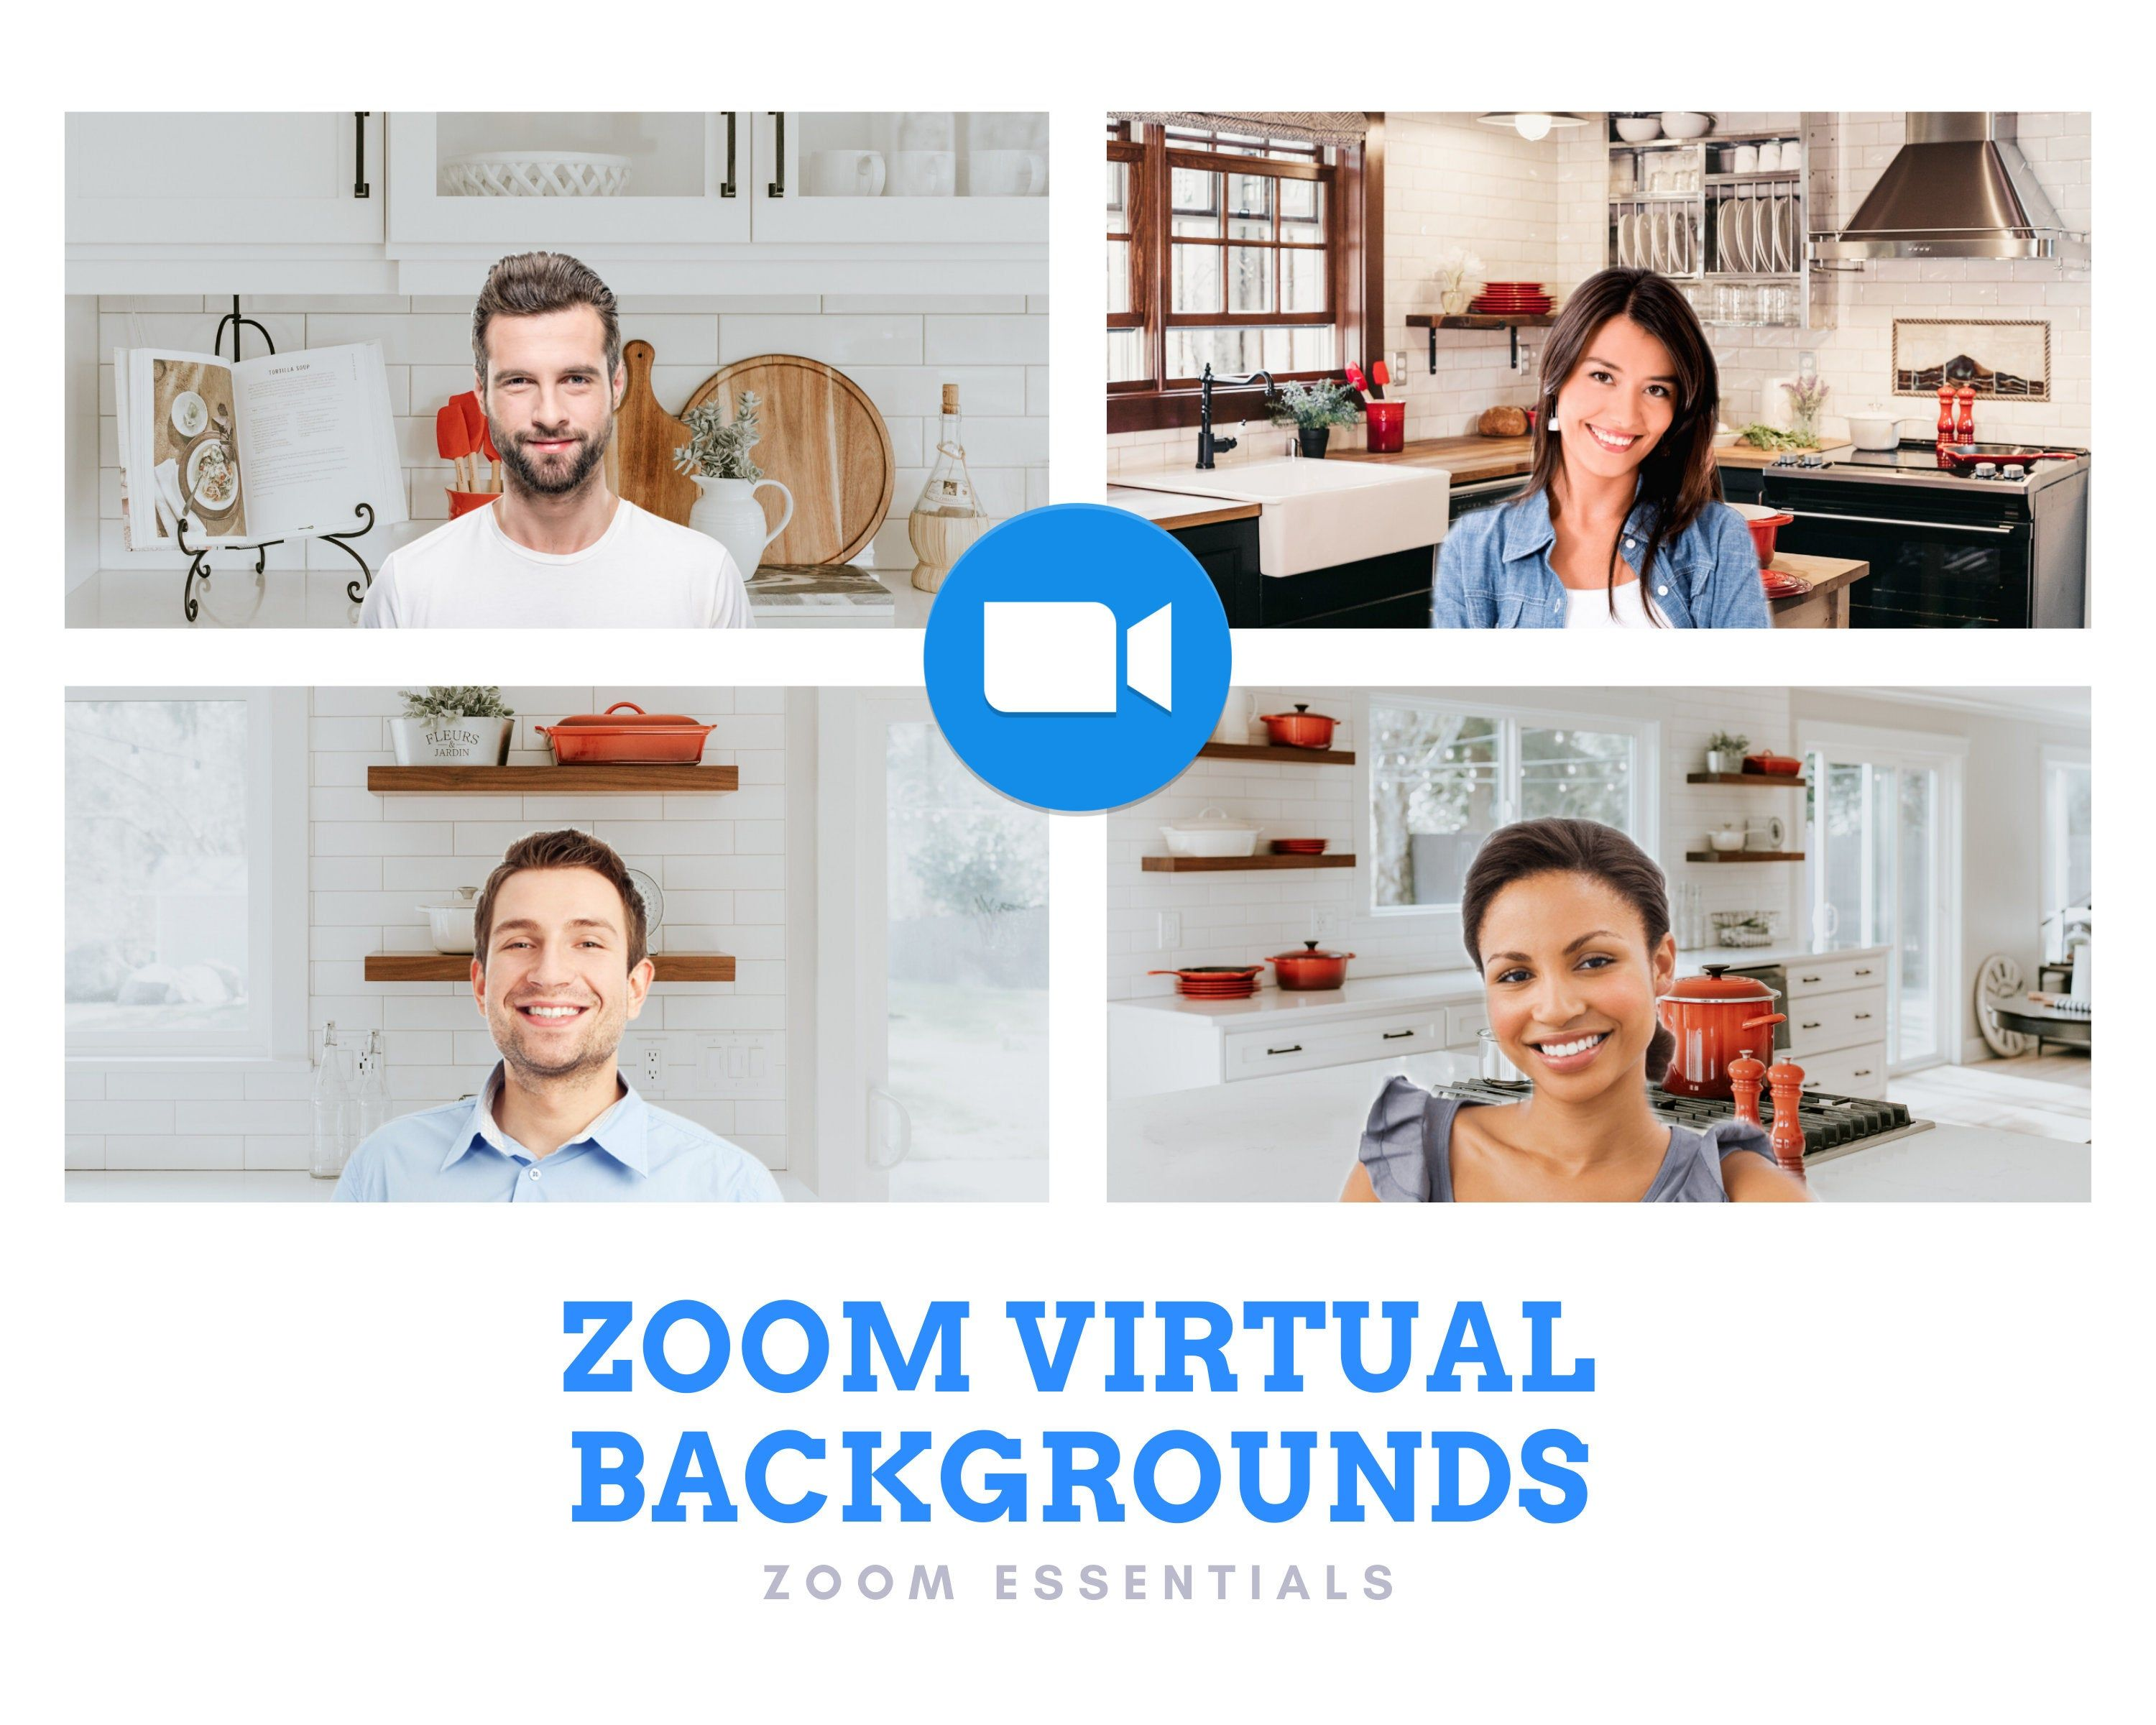 Pin on Zoom Background Virtual Backgrounds for Skype